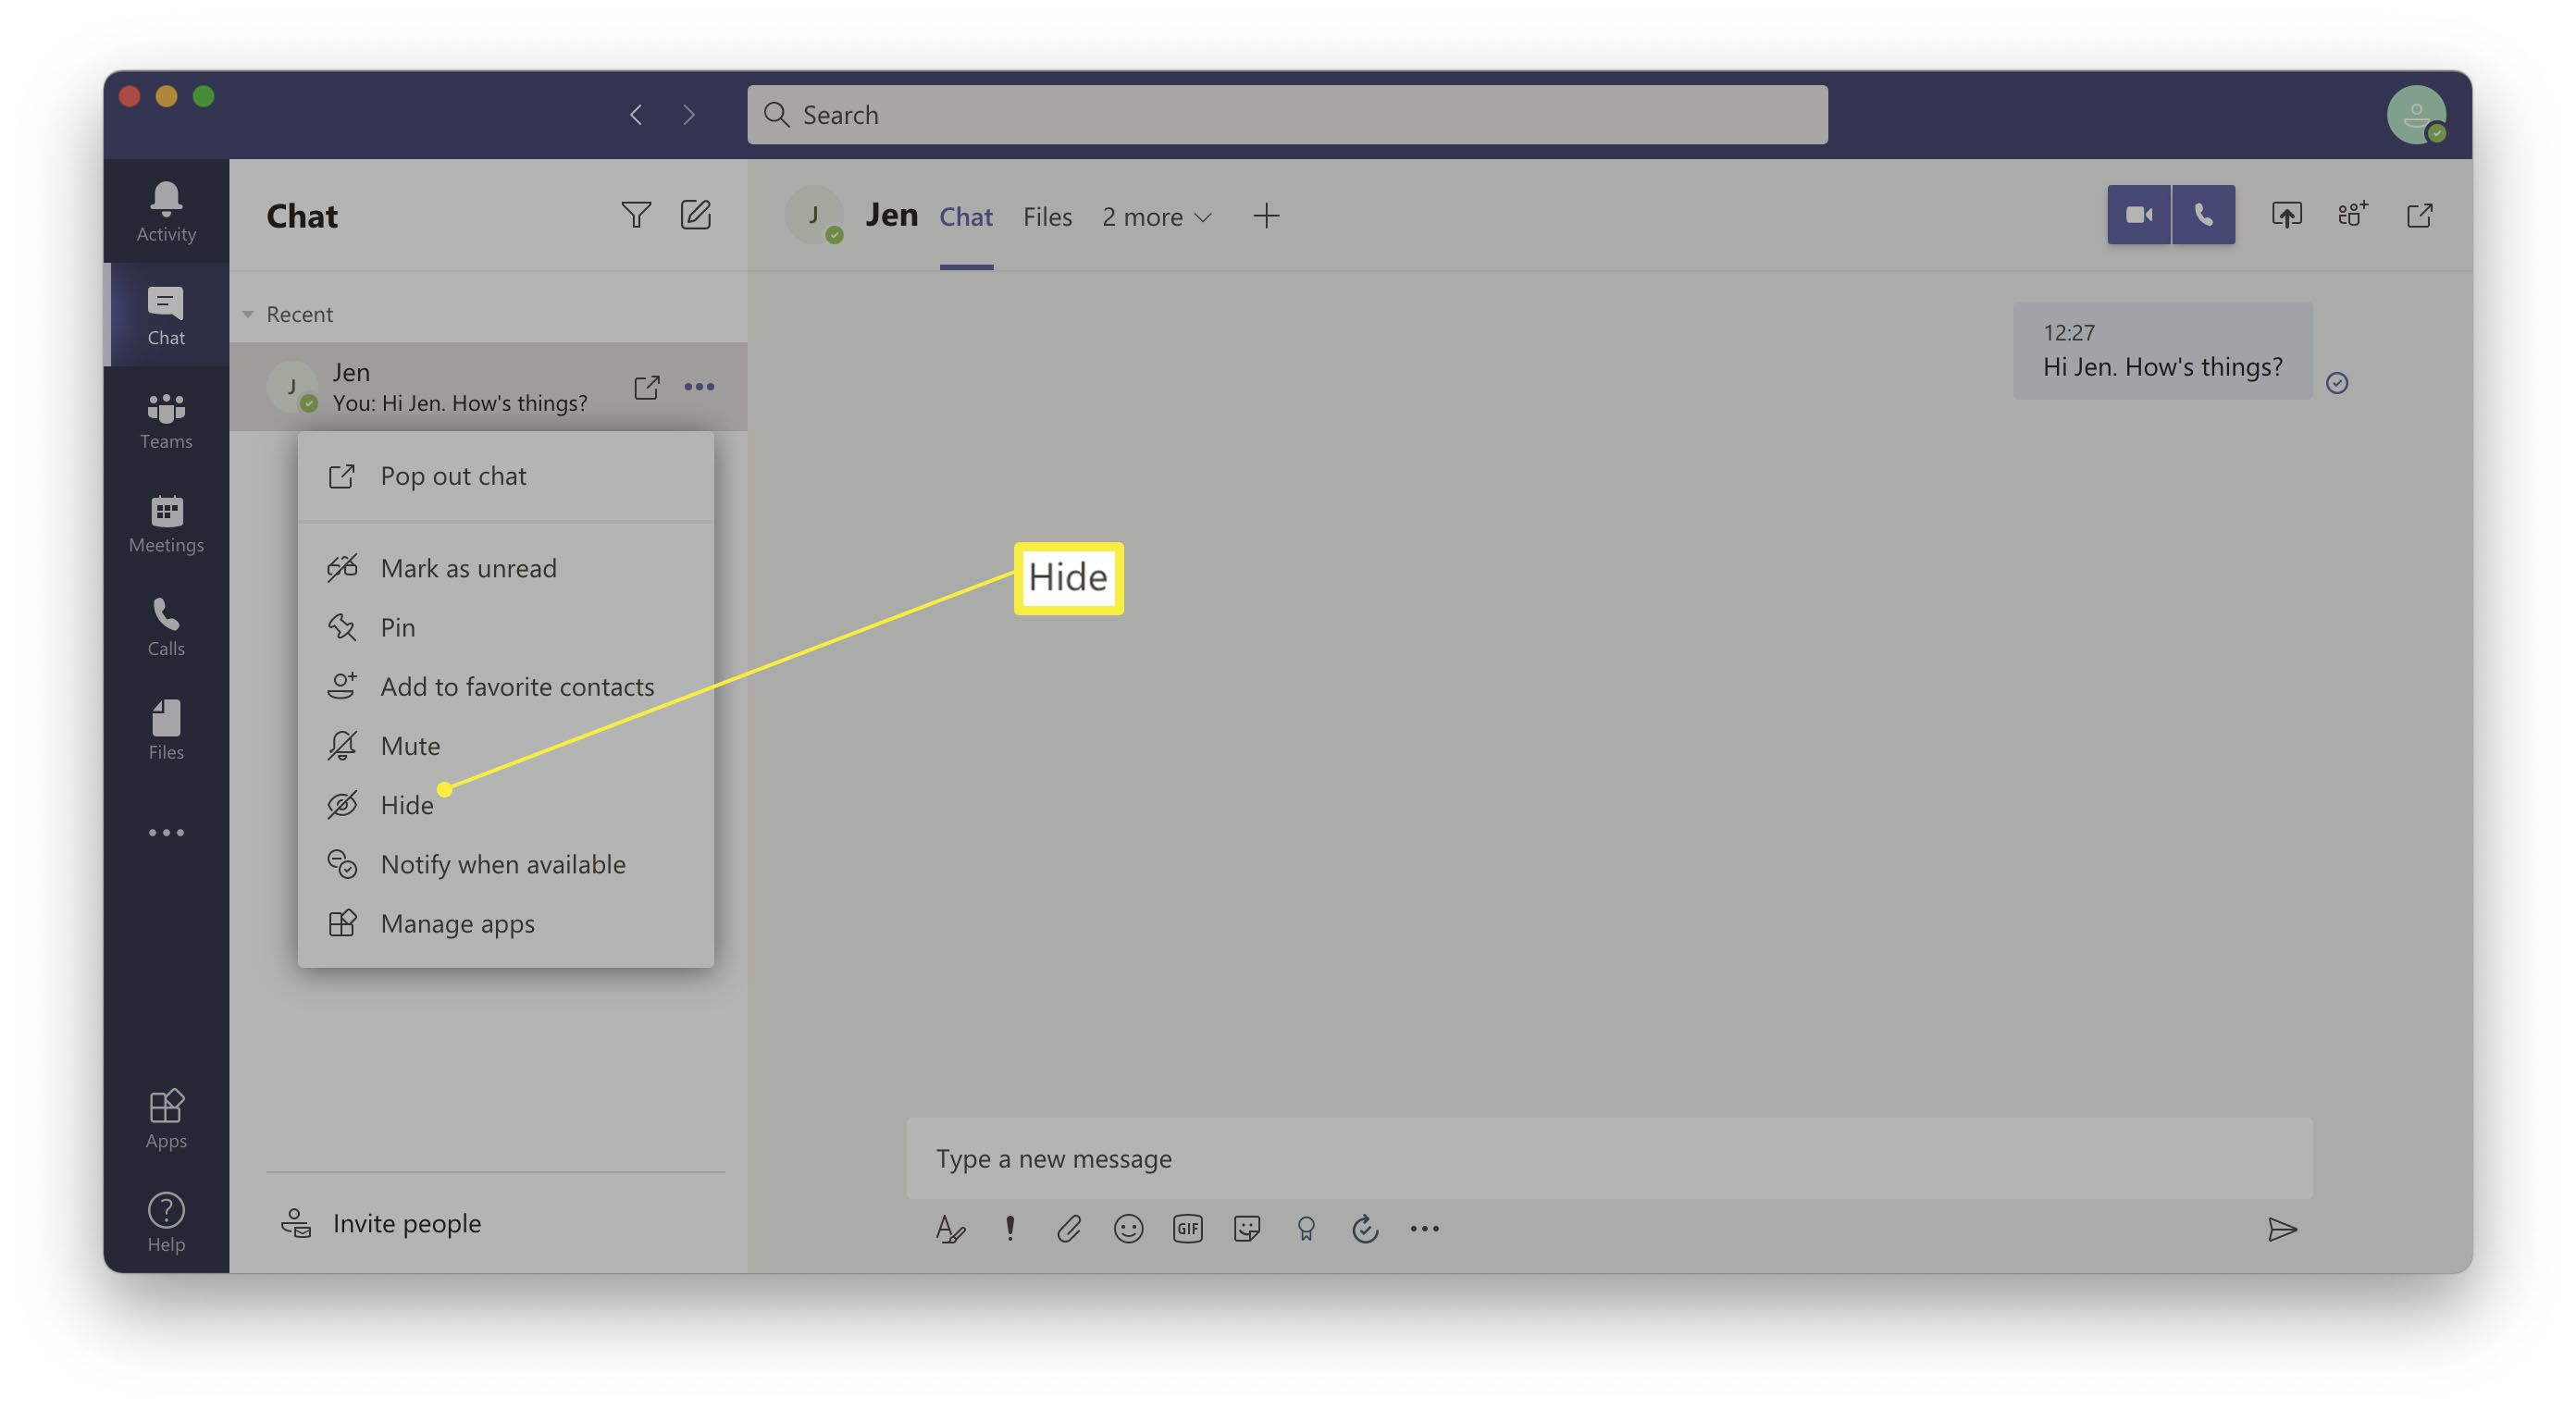 Right click options for a person's name in Chat on Microsoft Teams